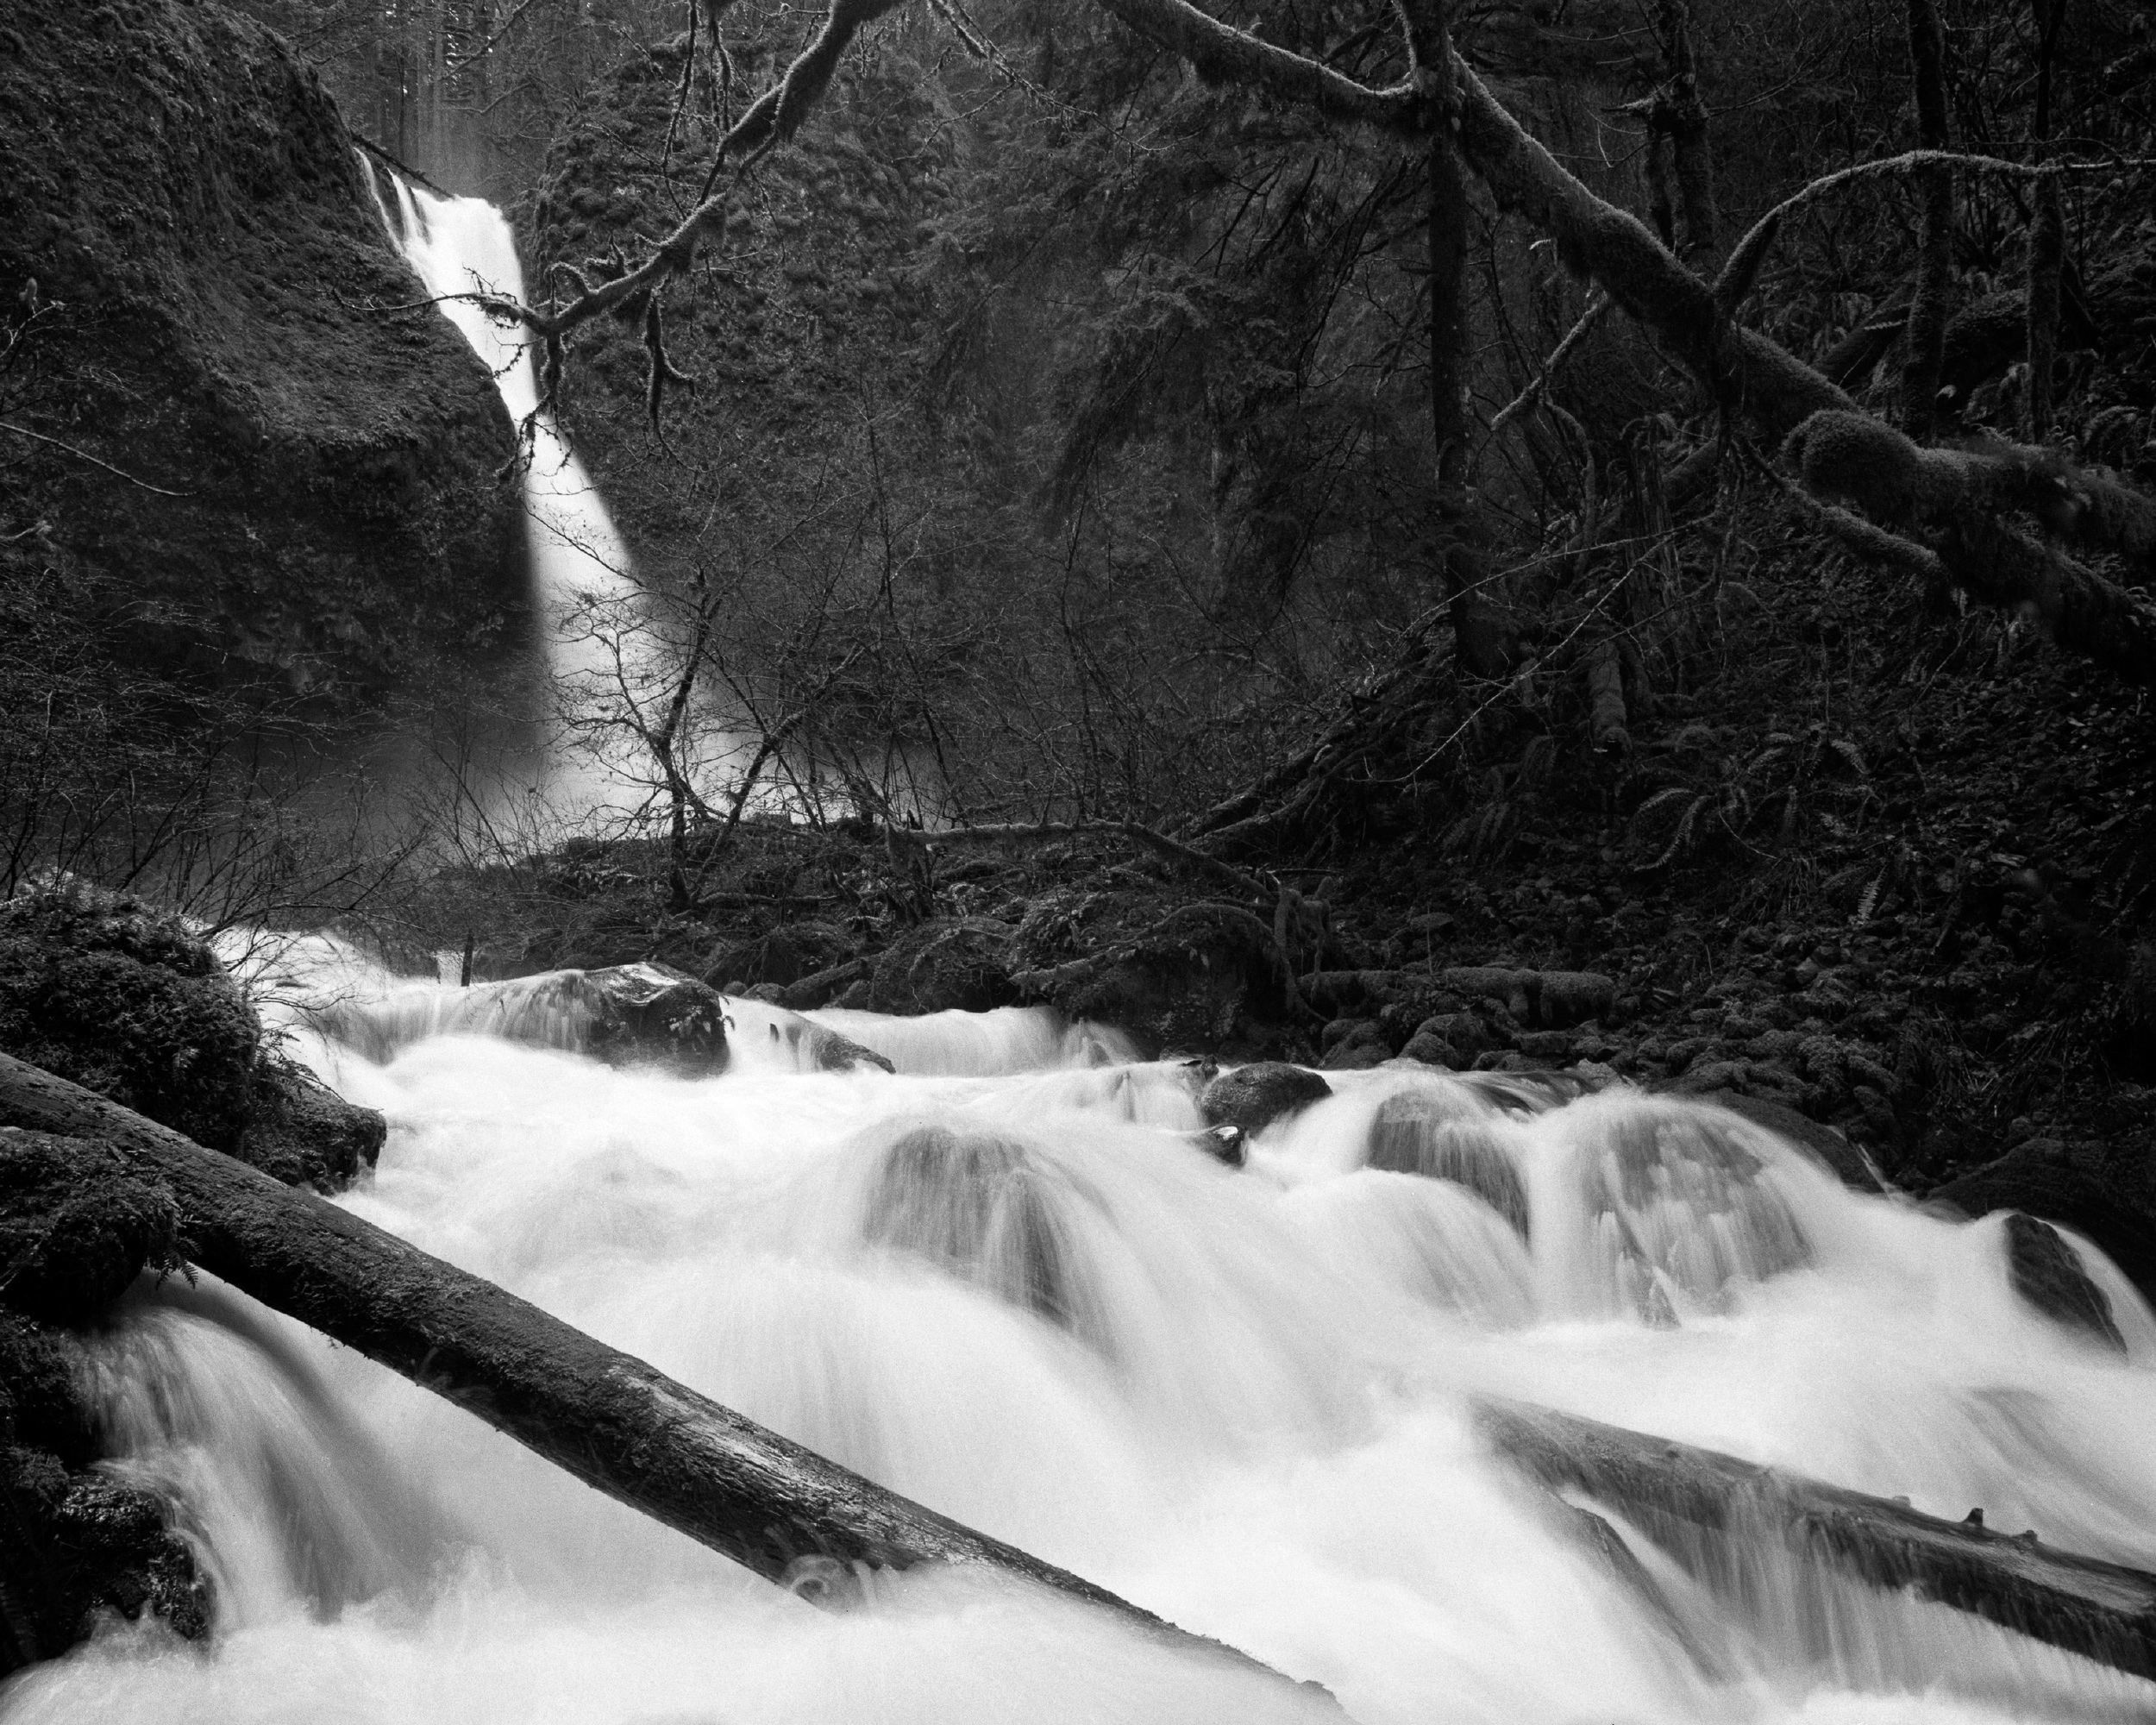 I took this downstream a bit from Ponytail falls.